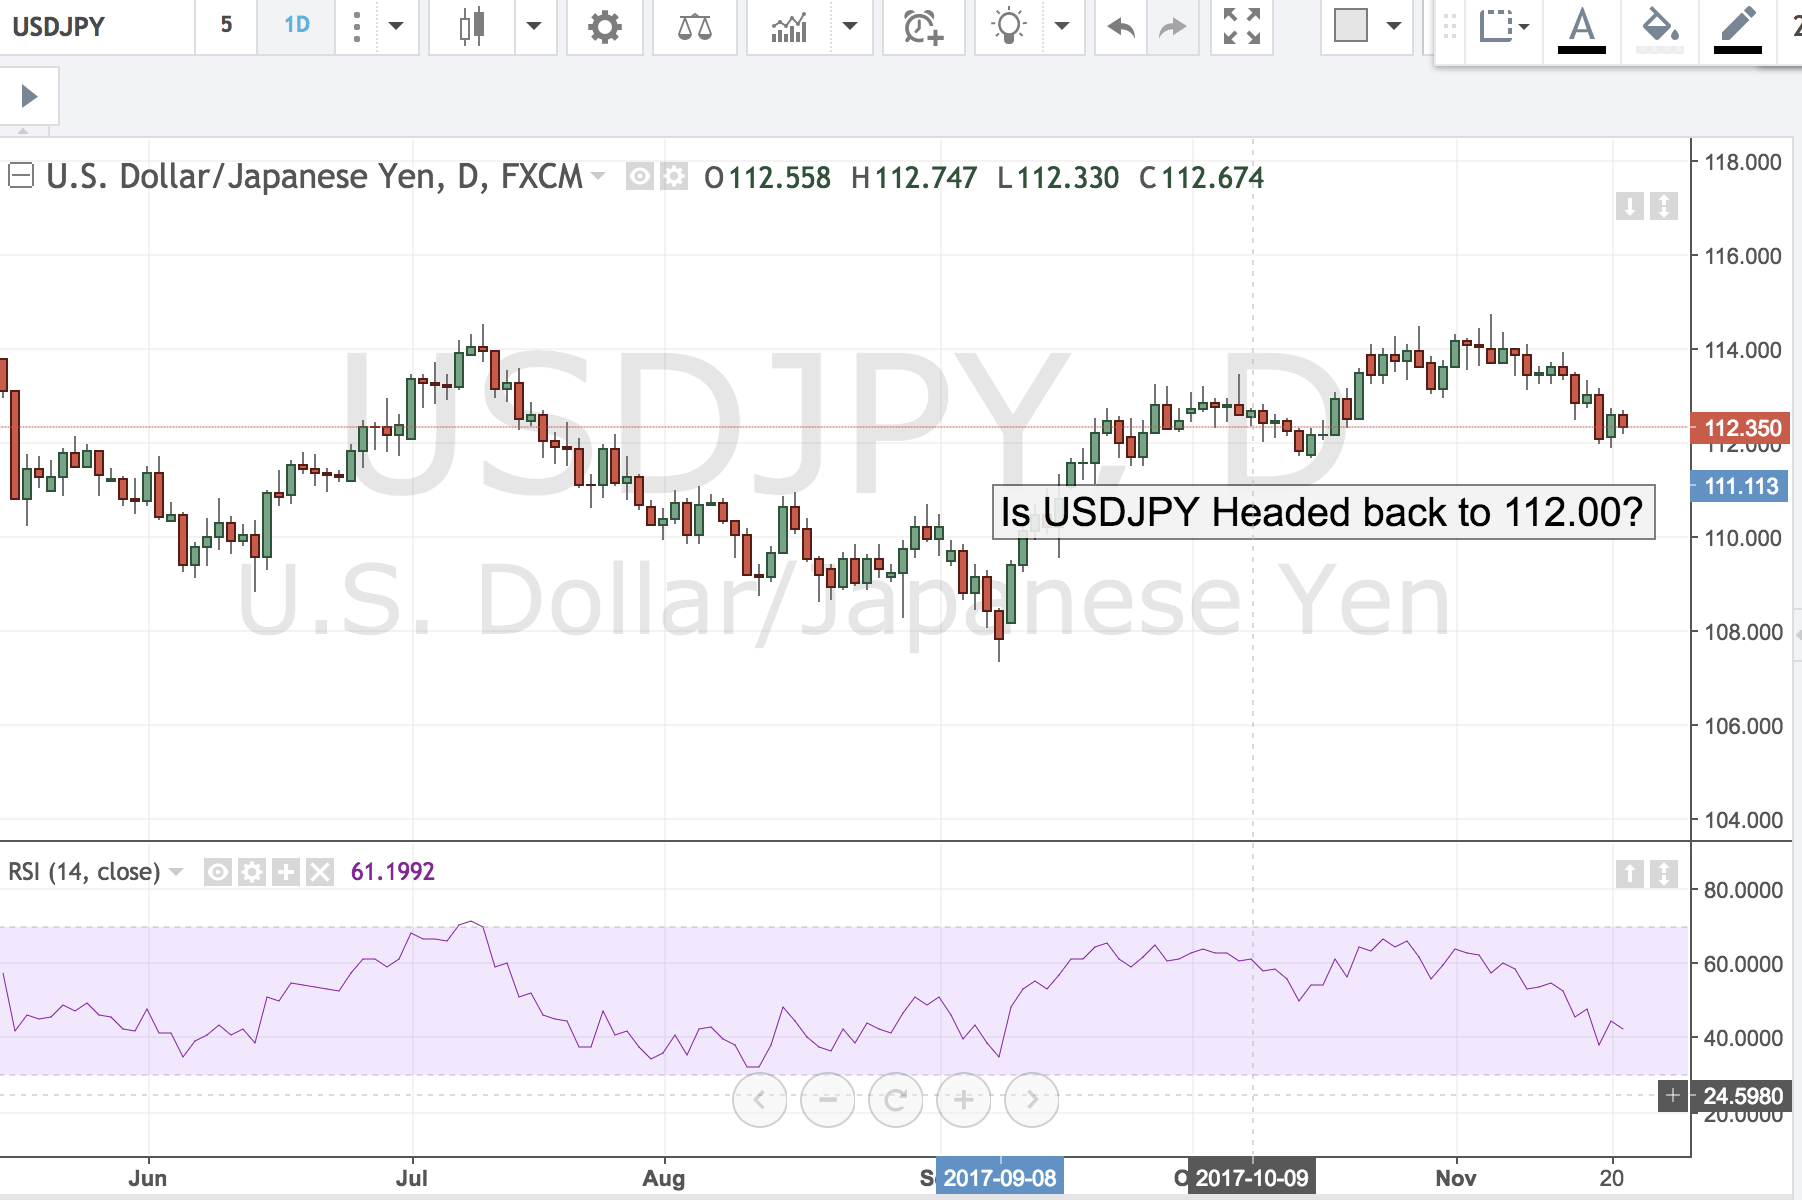 USDJPY Back to 112.00?